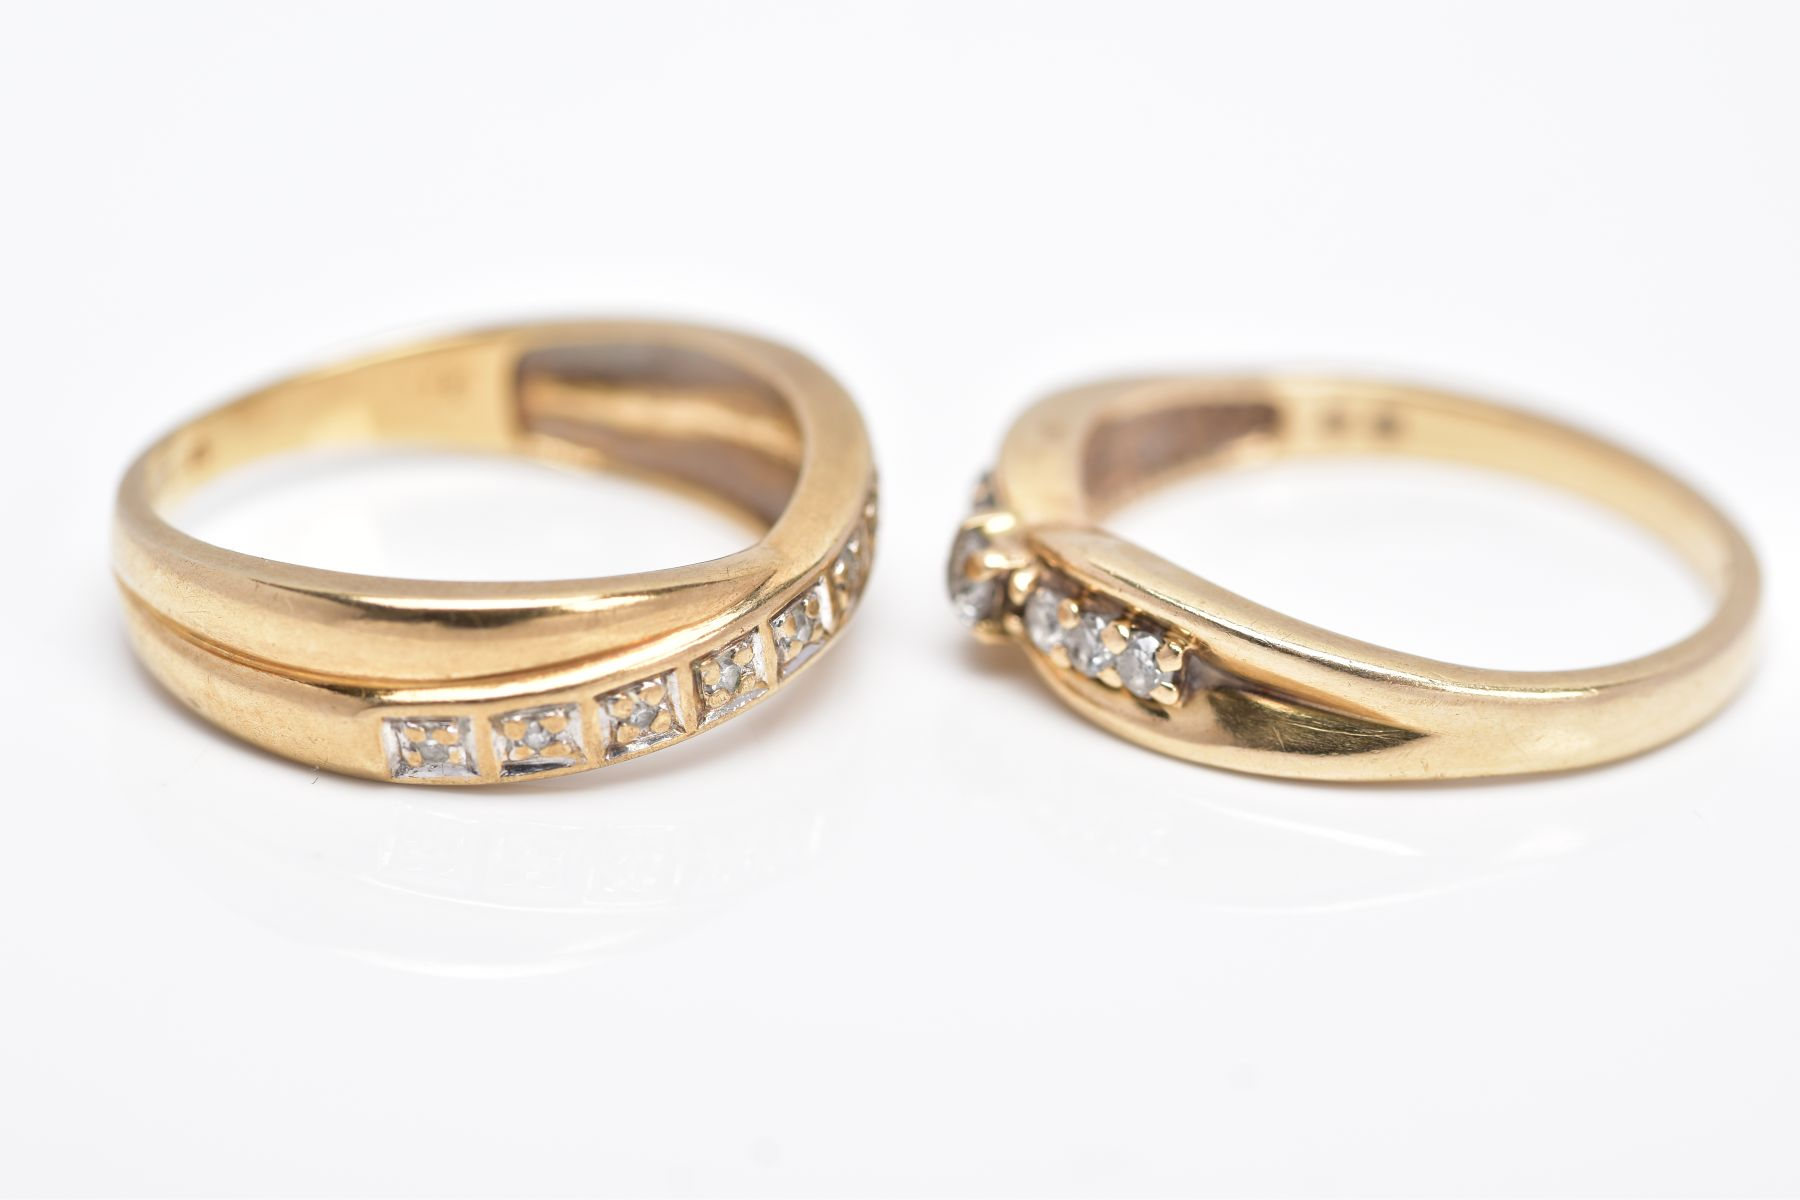 TWO 9CT GOLD DIAMOND RINGS, the first designed with a row of seven round brilliant cut diamonds, - Image 2 of 5